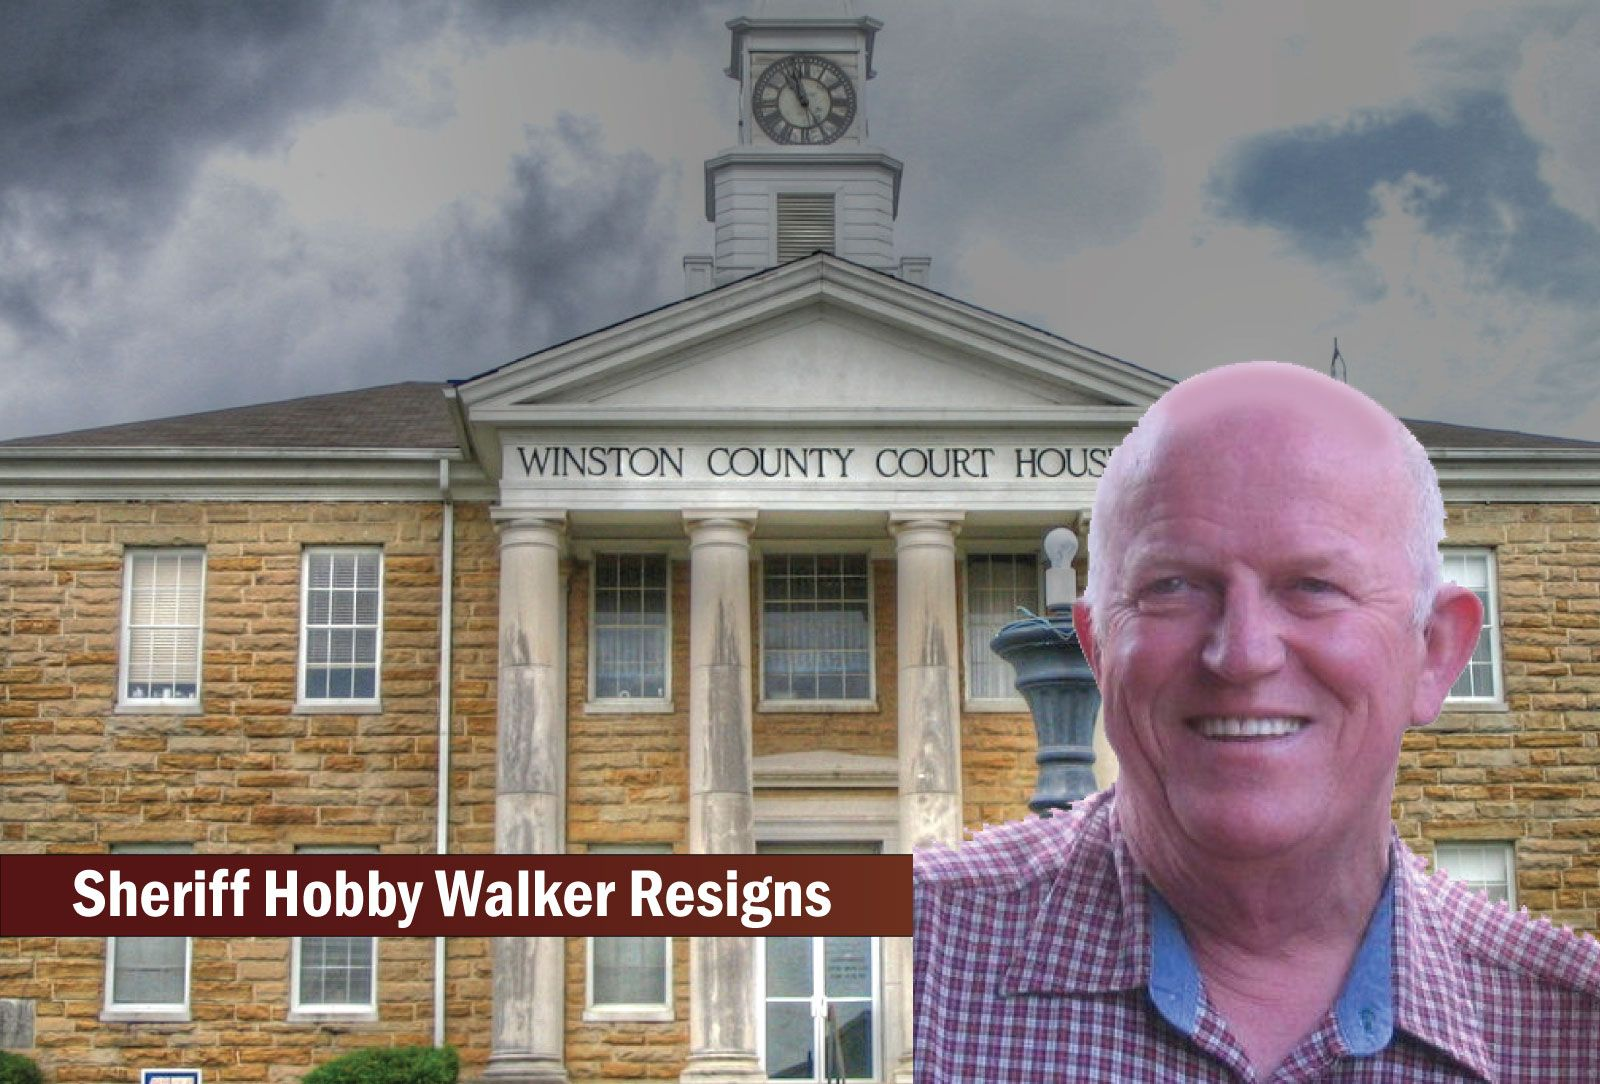 hobby walker out larry gilliland in winston county sheriff sample resume format for engineers cv objective student finance director summary